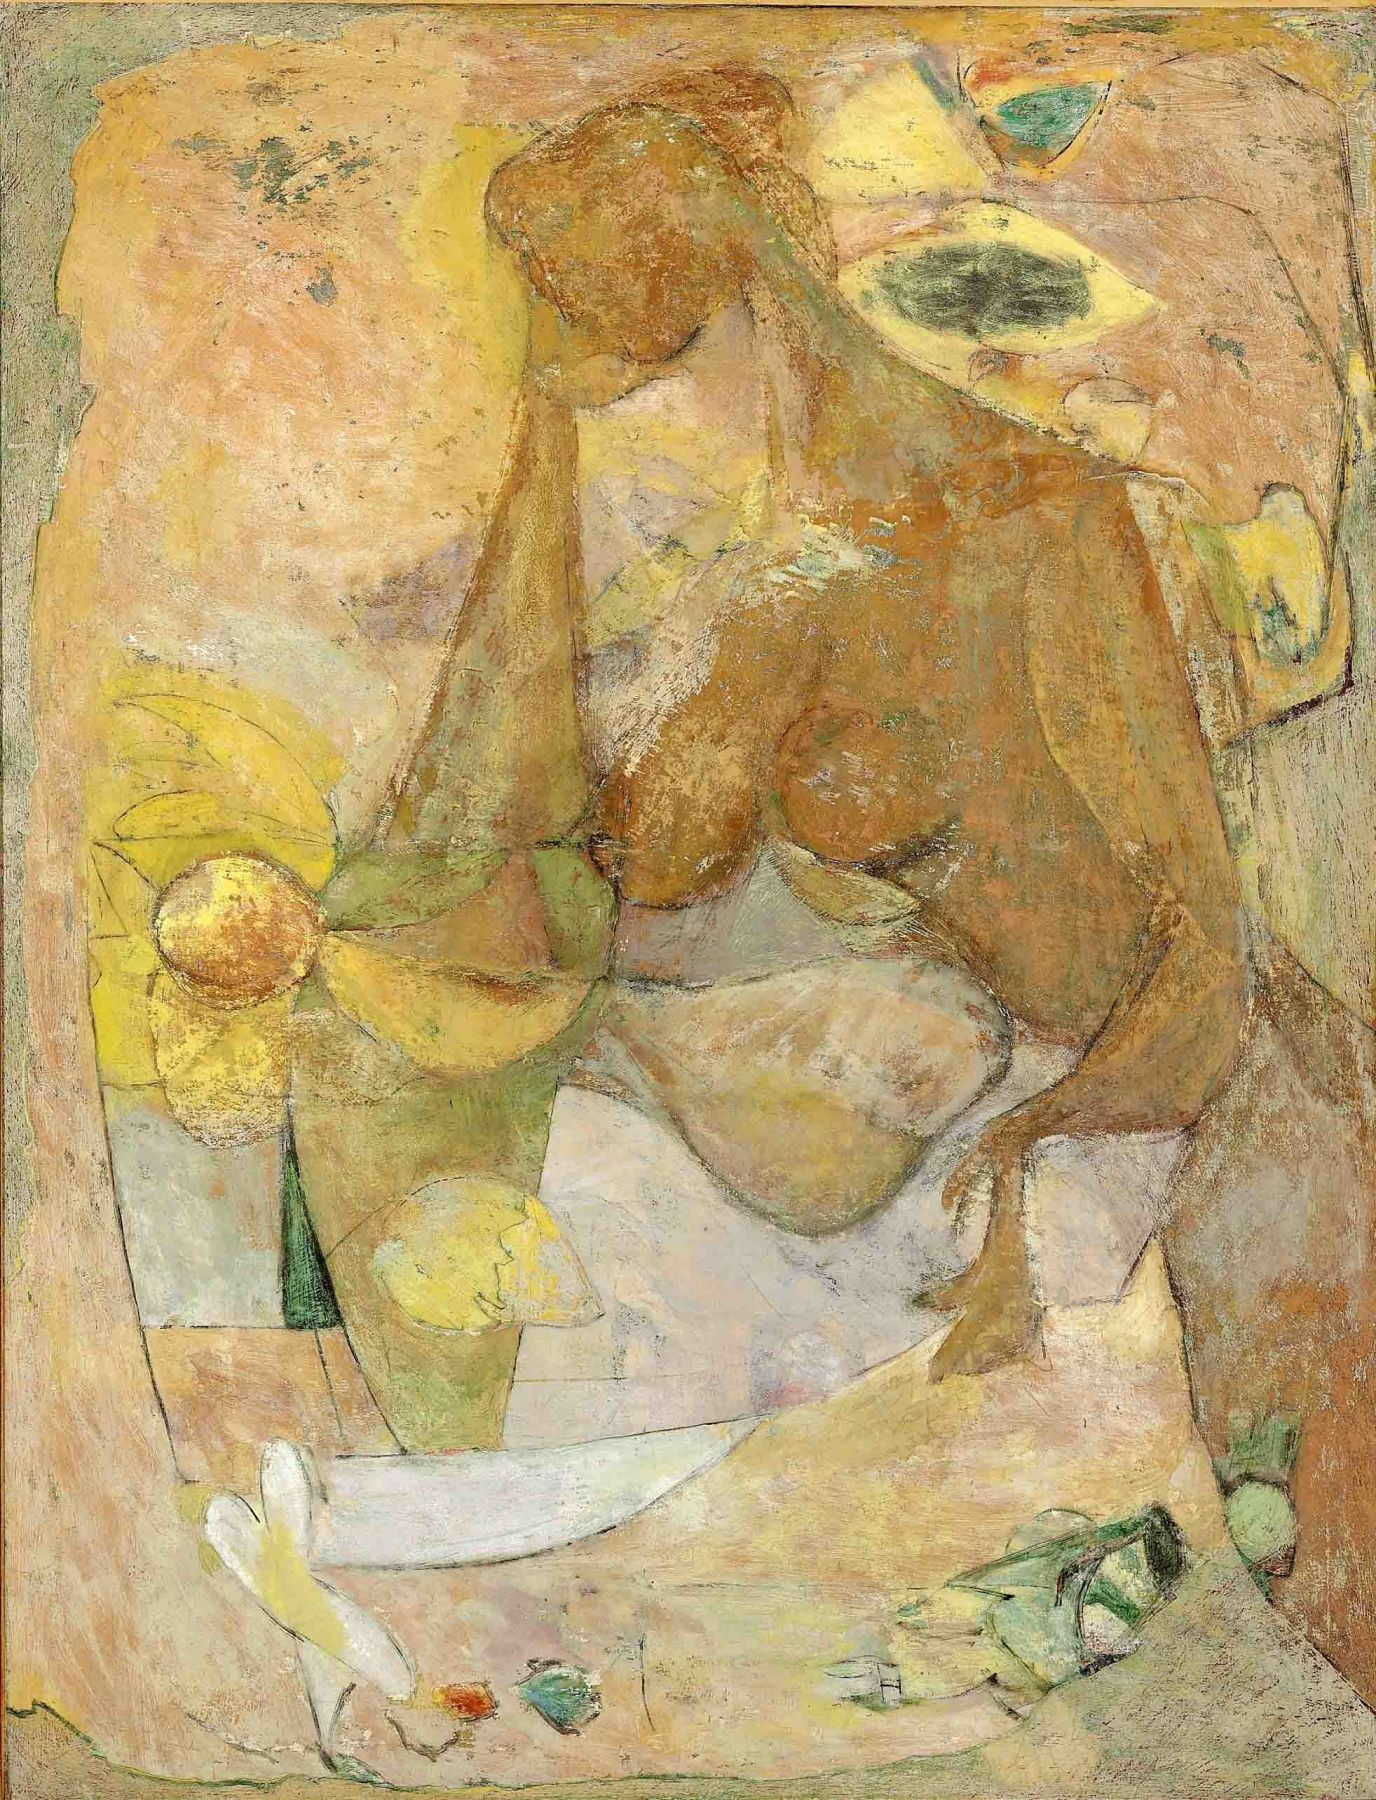 arshile gorky, Mother and Child, 1937, oil on canvas, 47 x 36 inches